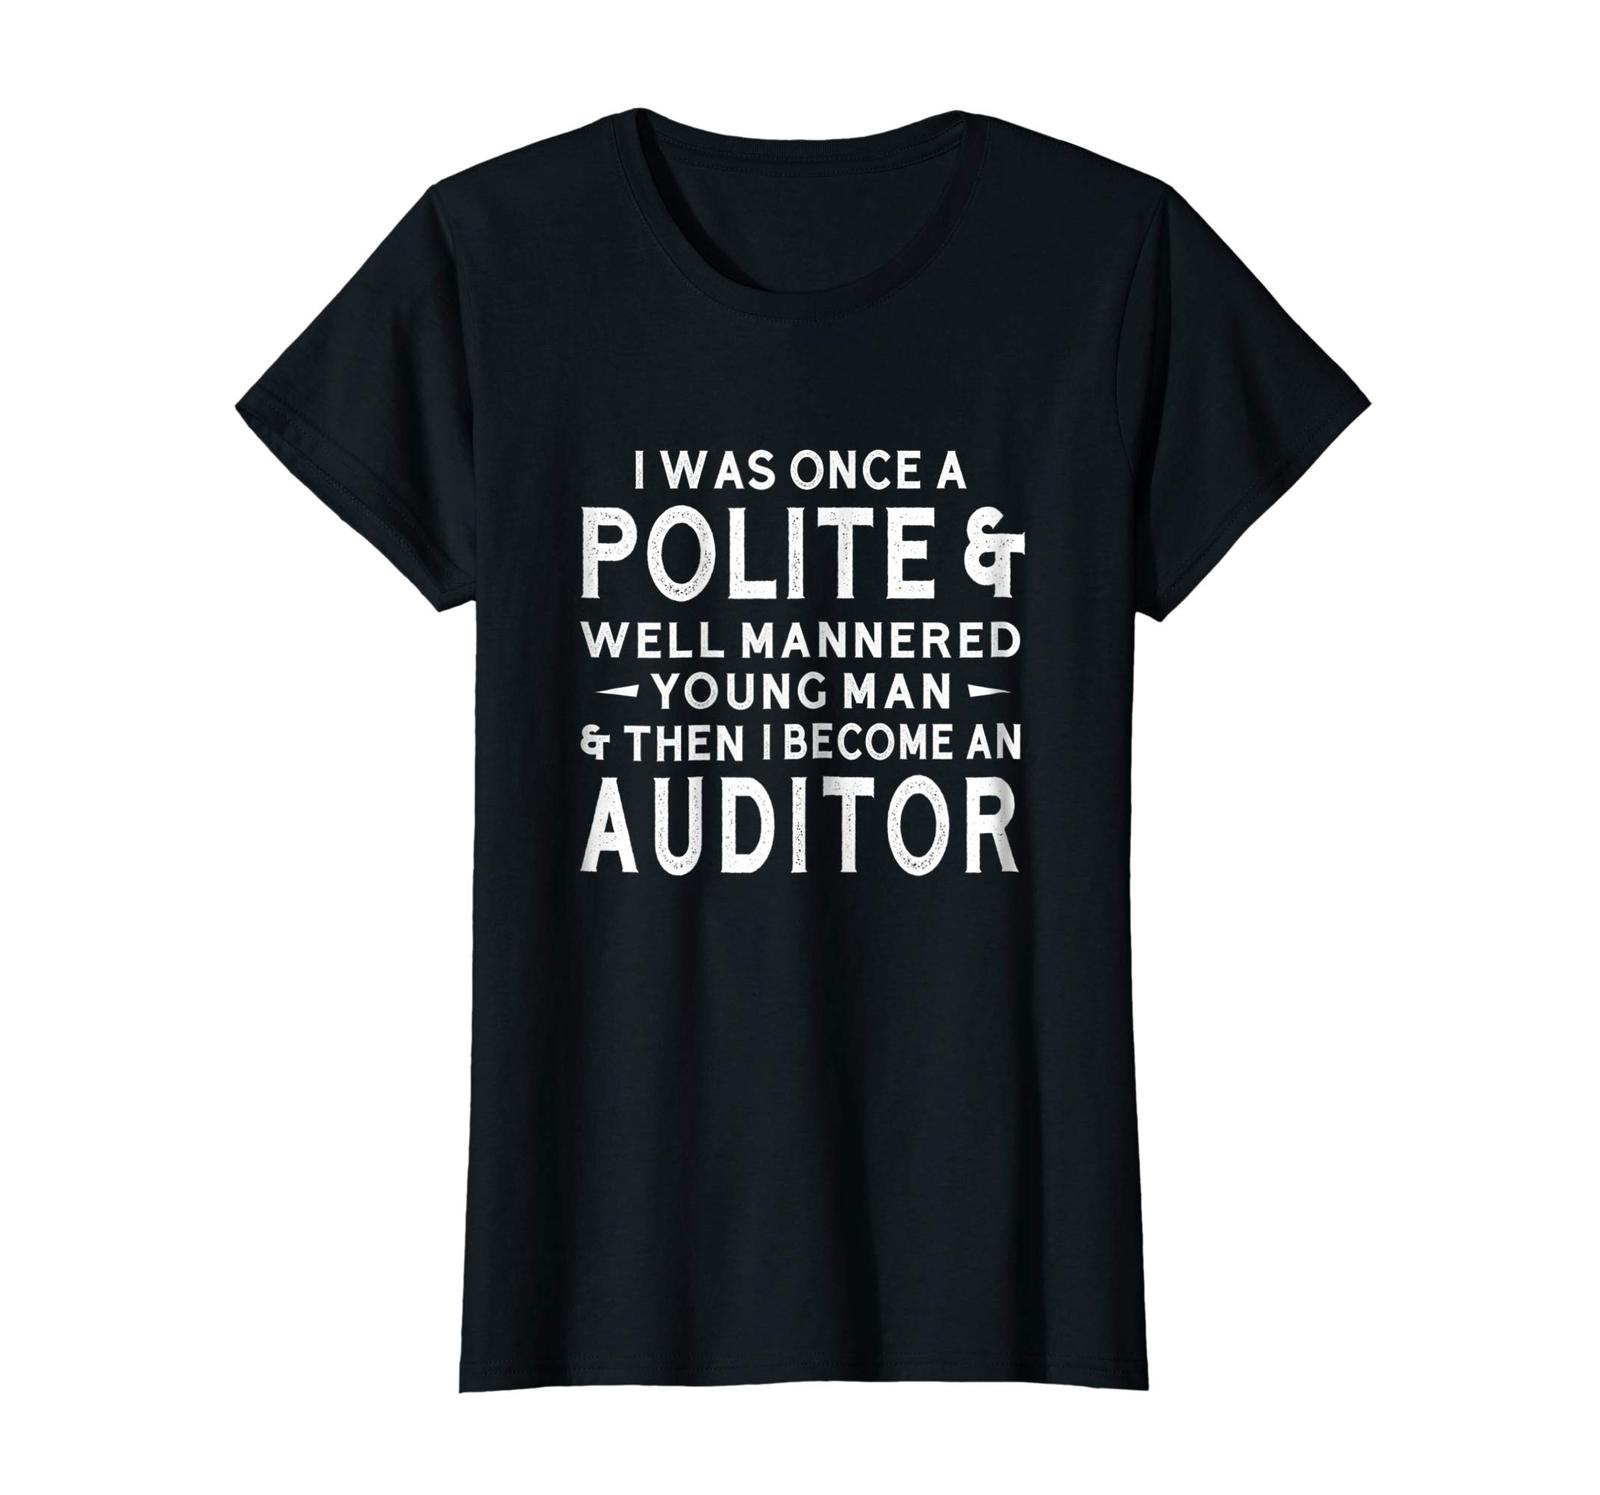 Primary image for New Shirts - I Was Once A Polite & Mannered Man Auditor T-Shirt Funny Wowen